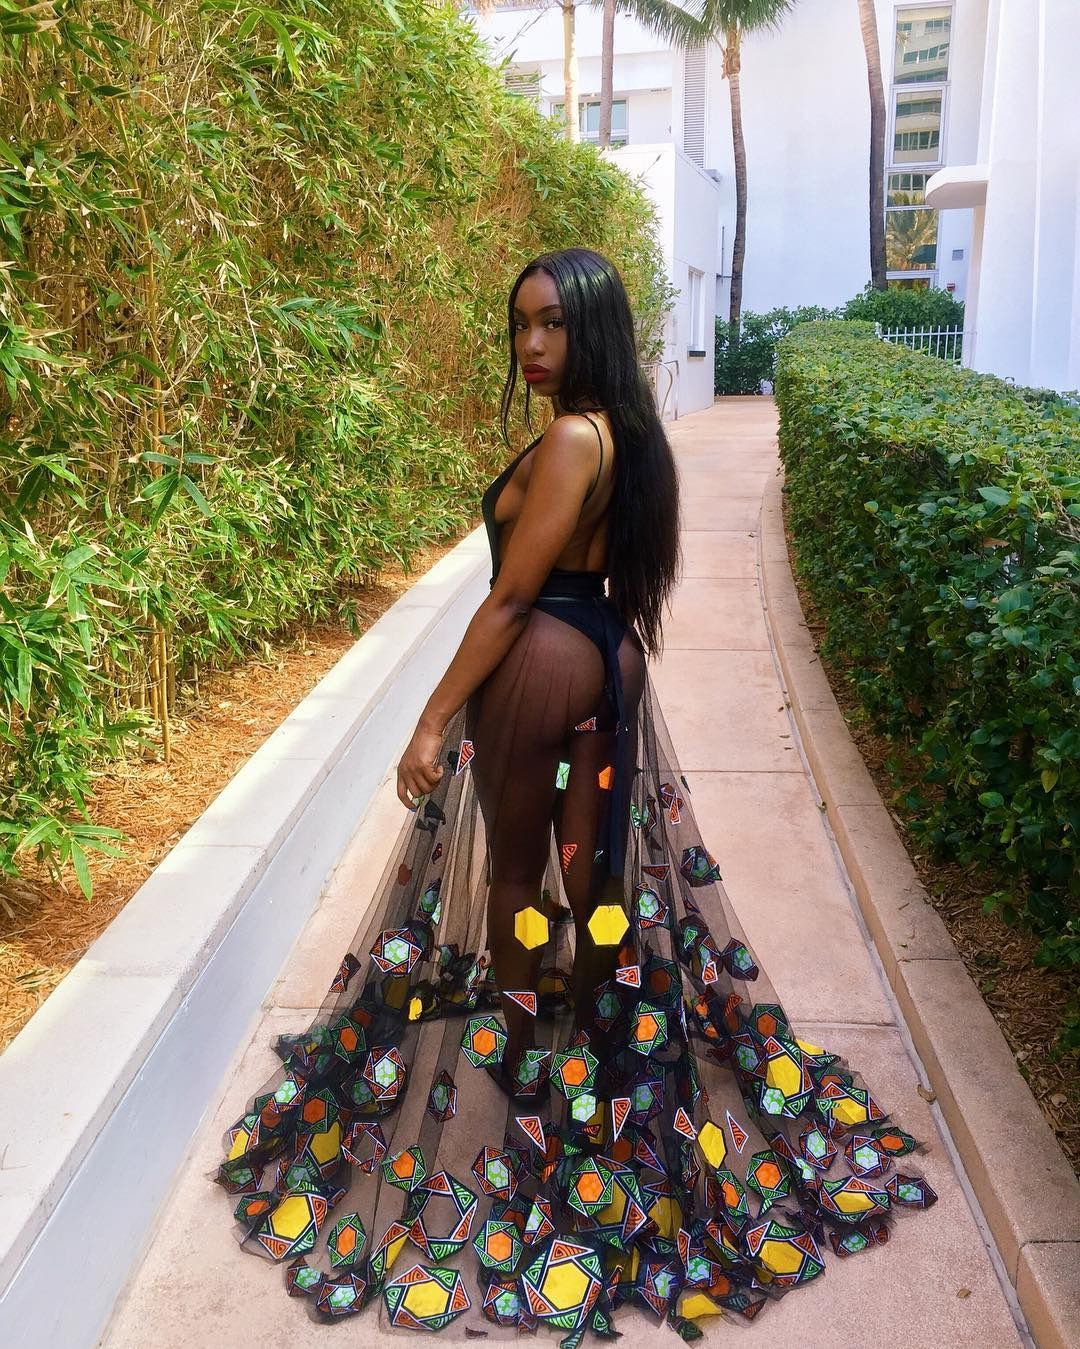 miss fat booty | things to wear | pinterest | black lady, africans